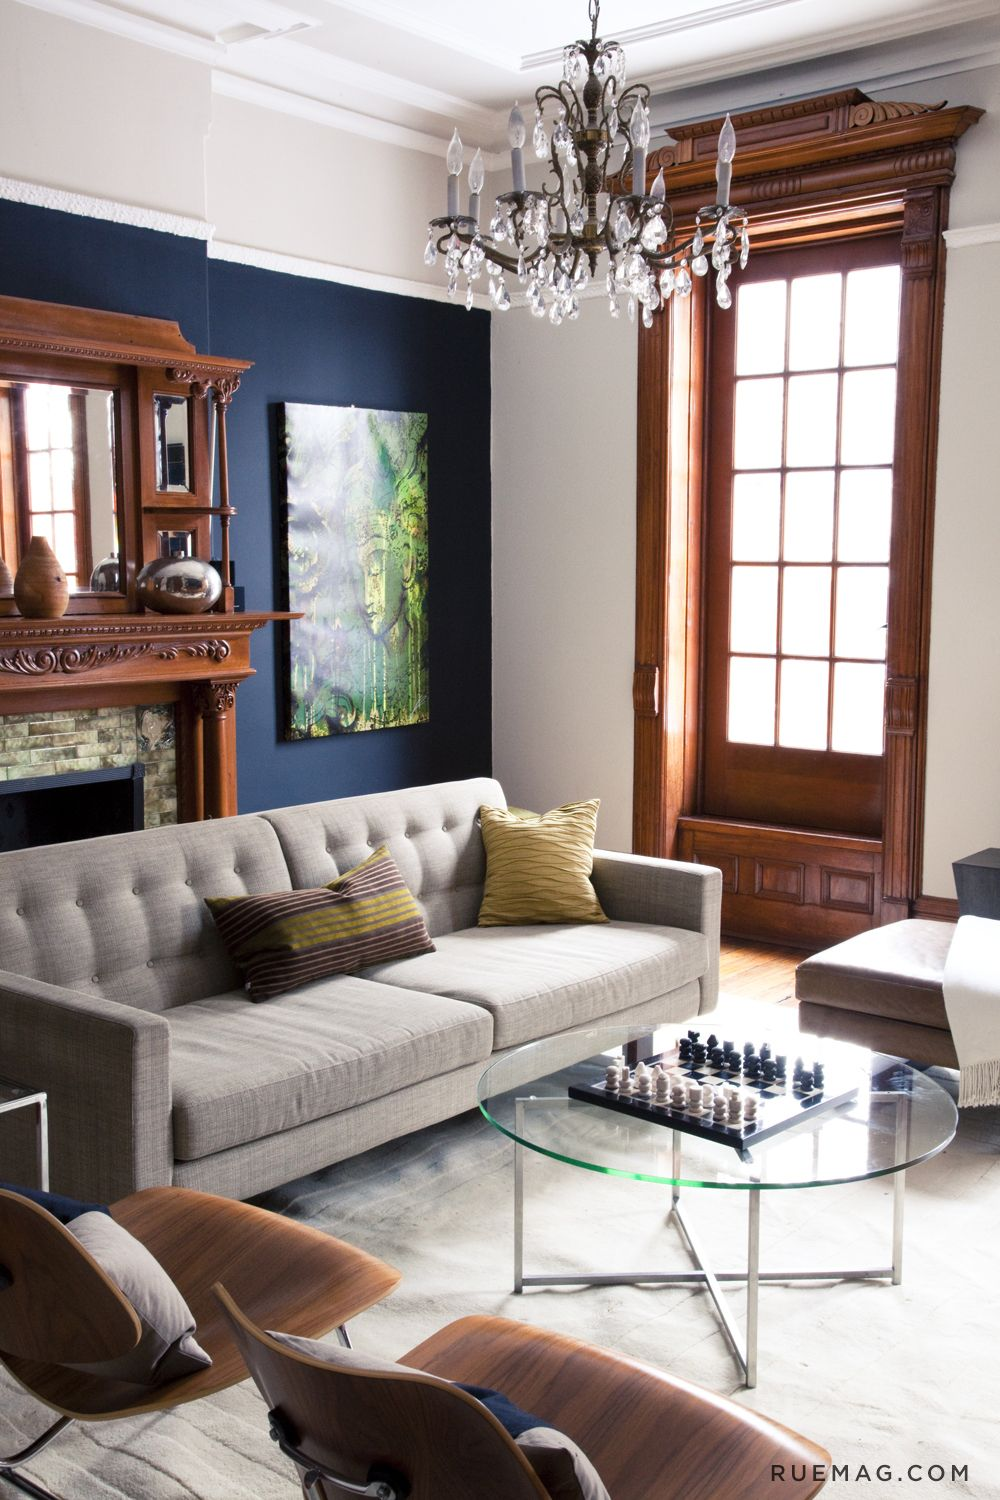 Where Can I Buy Living Room Furniture